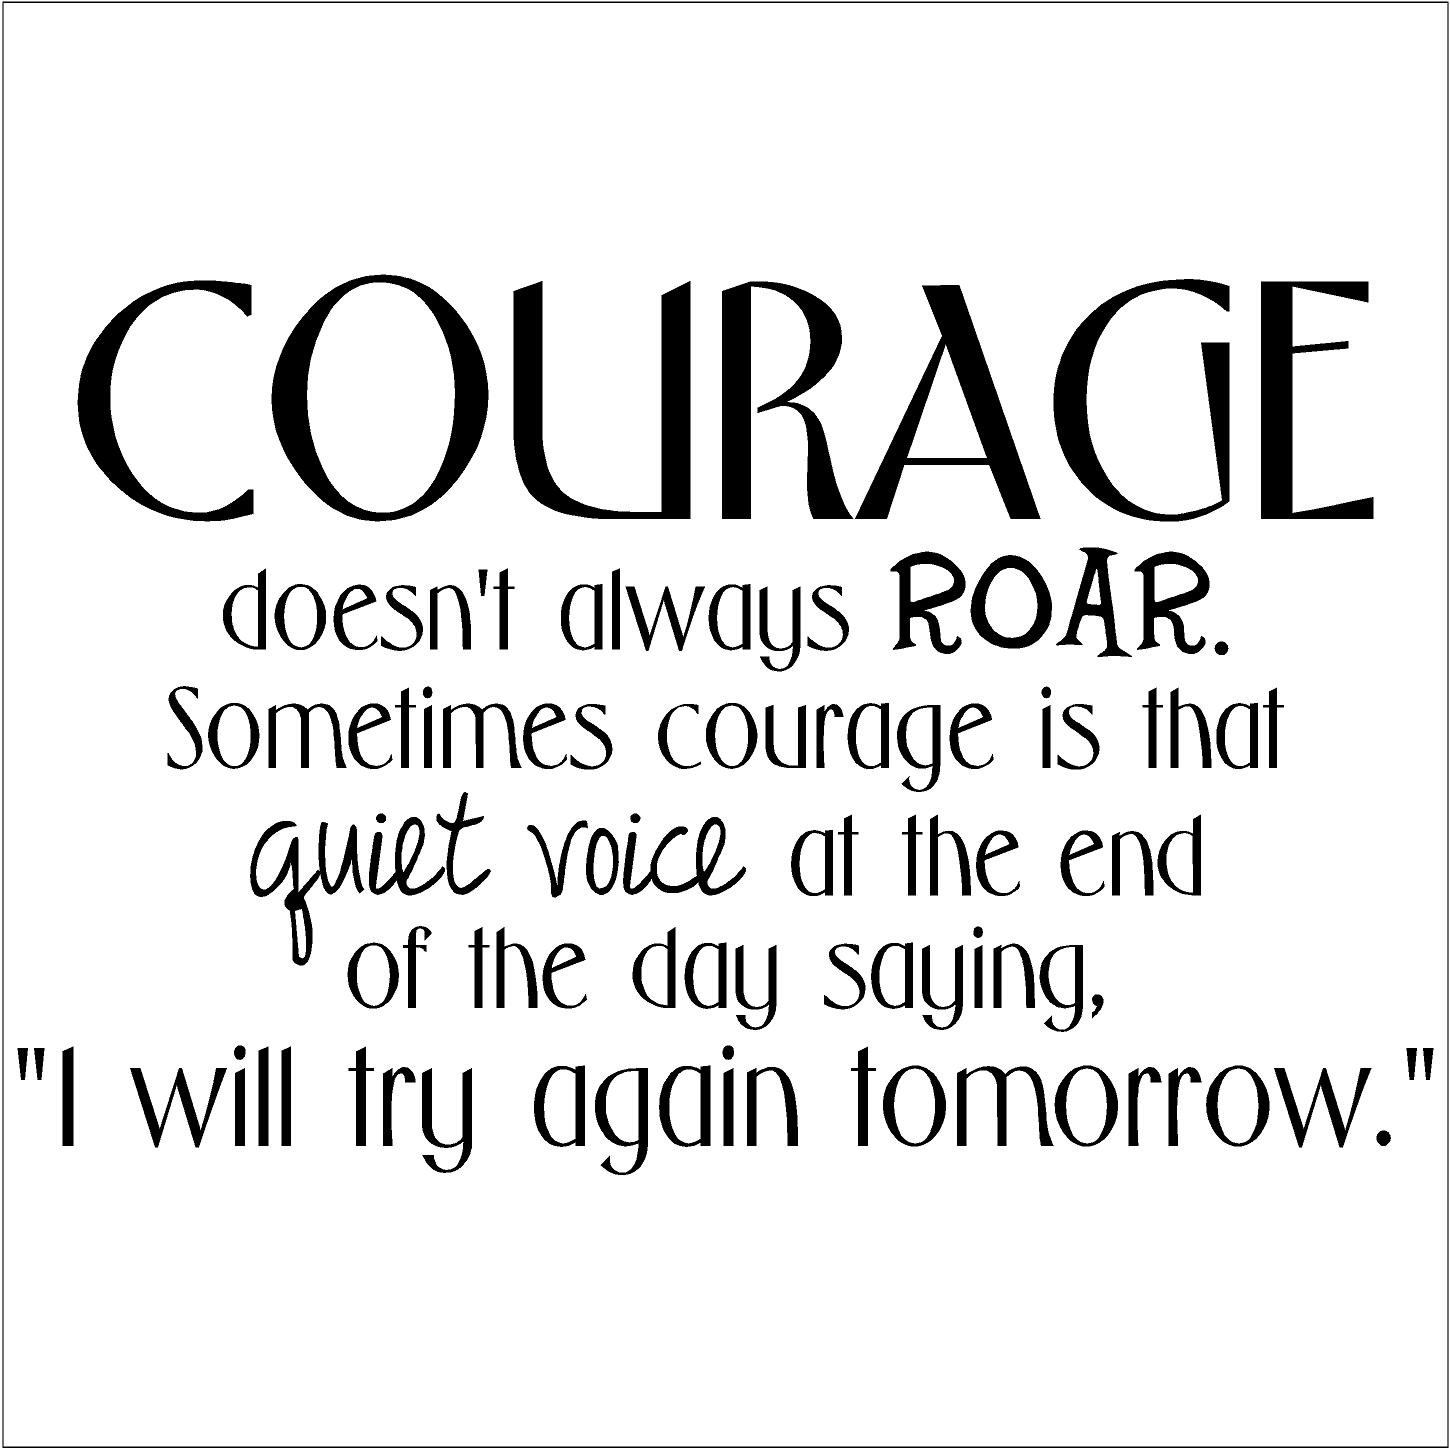 courage-doesnt-always-roar.jpg